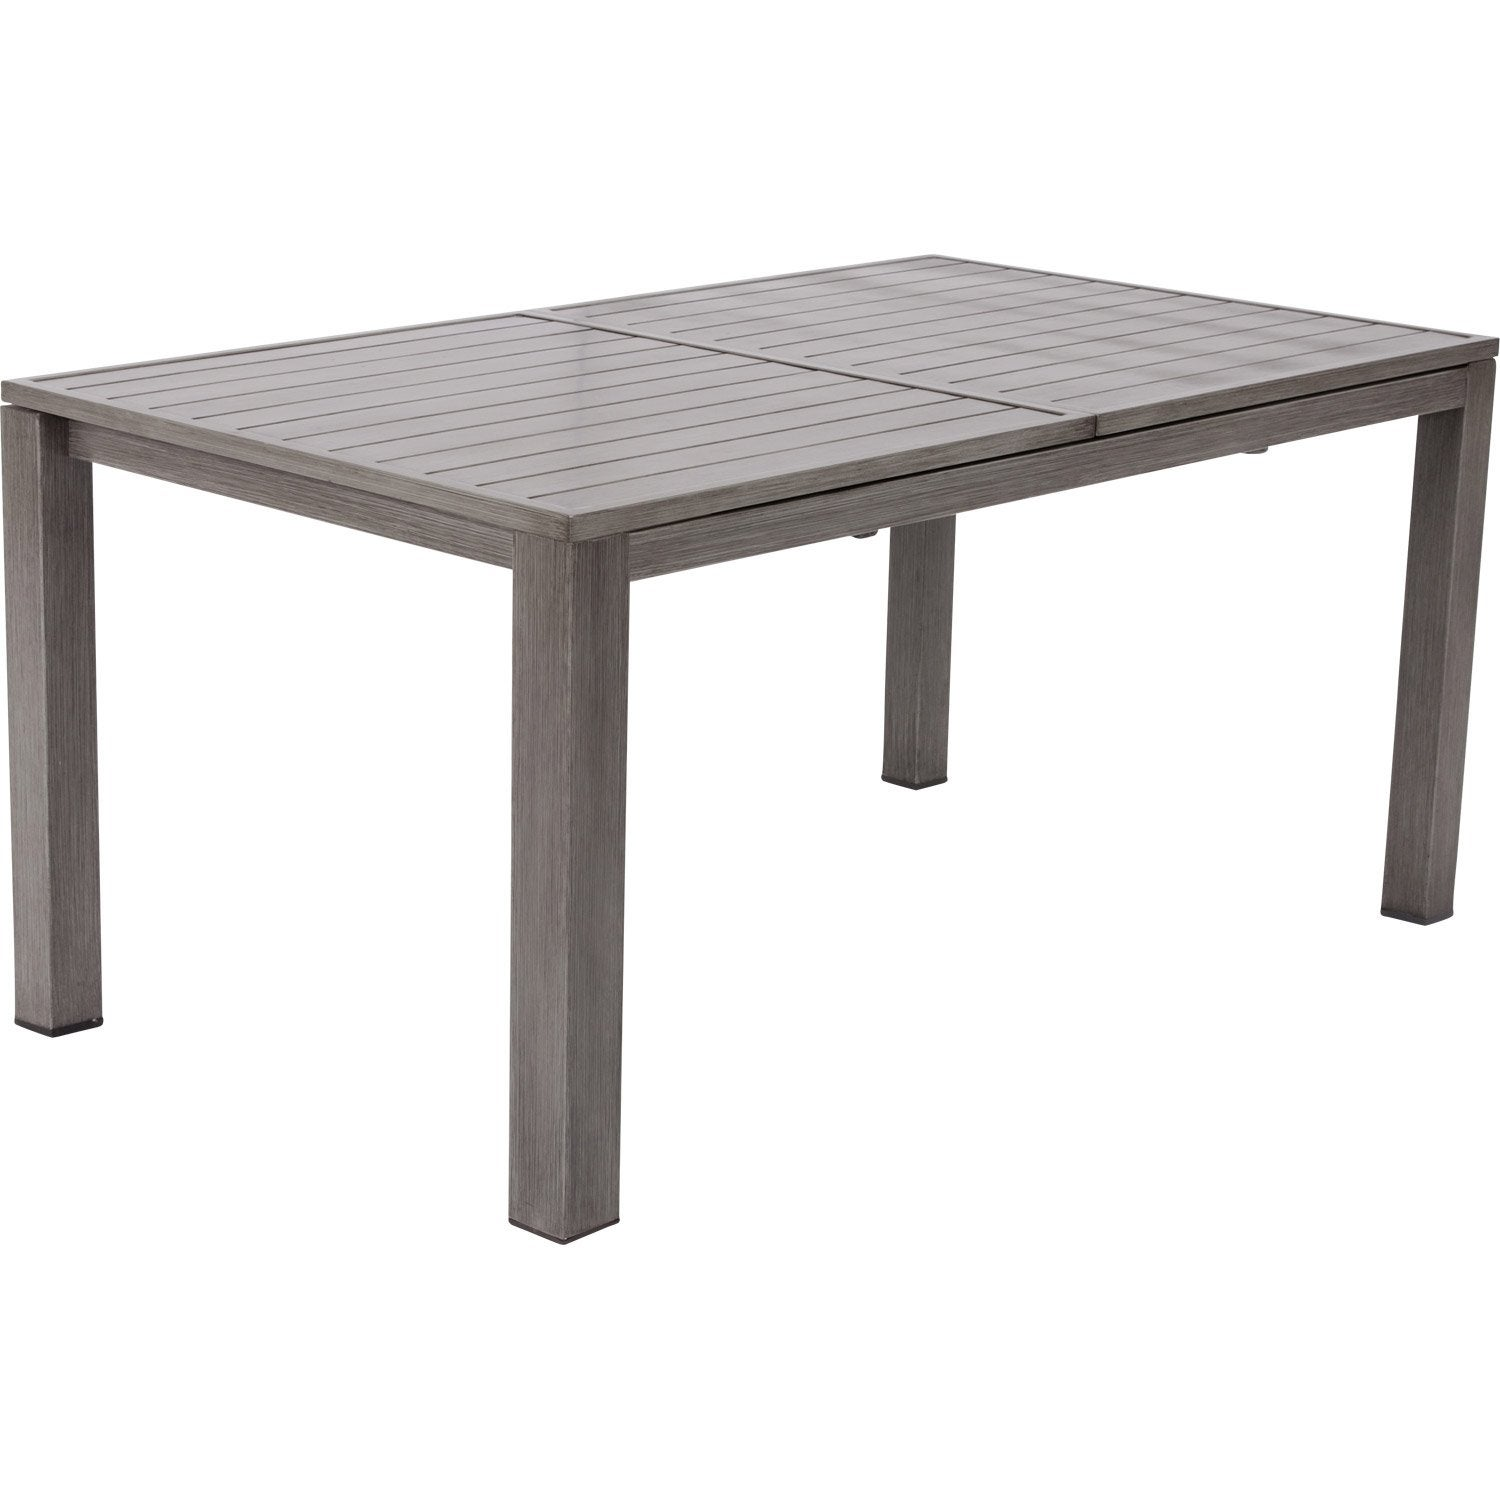 Table de jardin naterial antibes rectangulaire gris look - Table de jardin 2 personnes ...